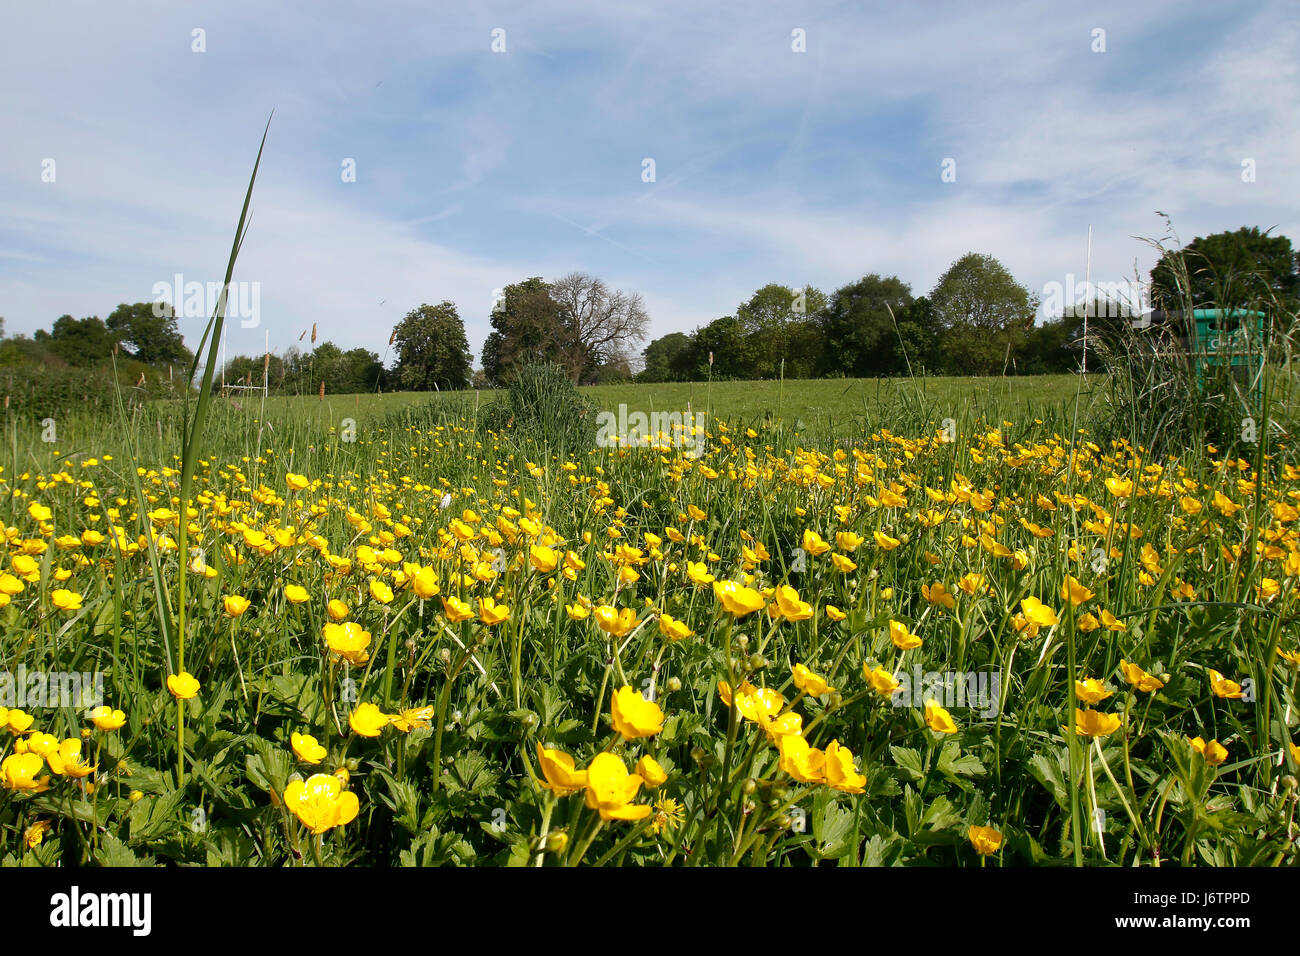 Uttoxeter, Staffordshire. 22nd May 2017. Flowers blooming at the start of a week-long heat-wave in Uttoxeter, Staffordshire. - Stock Image